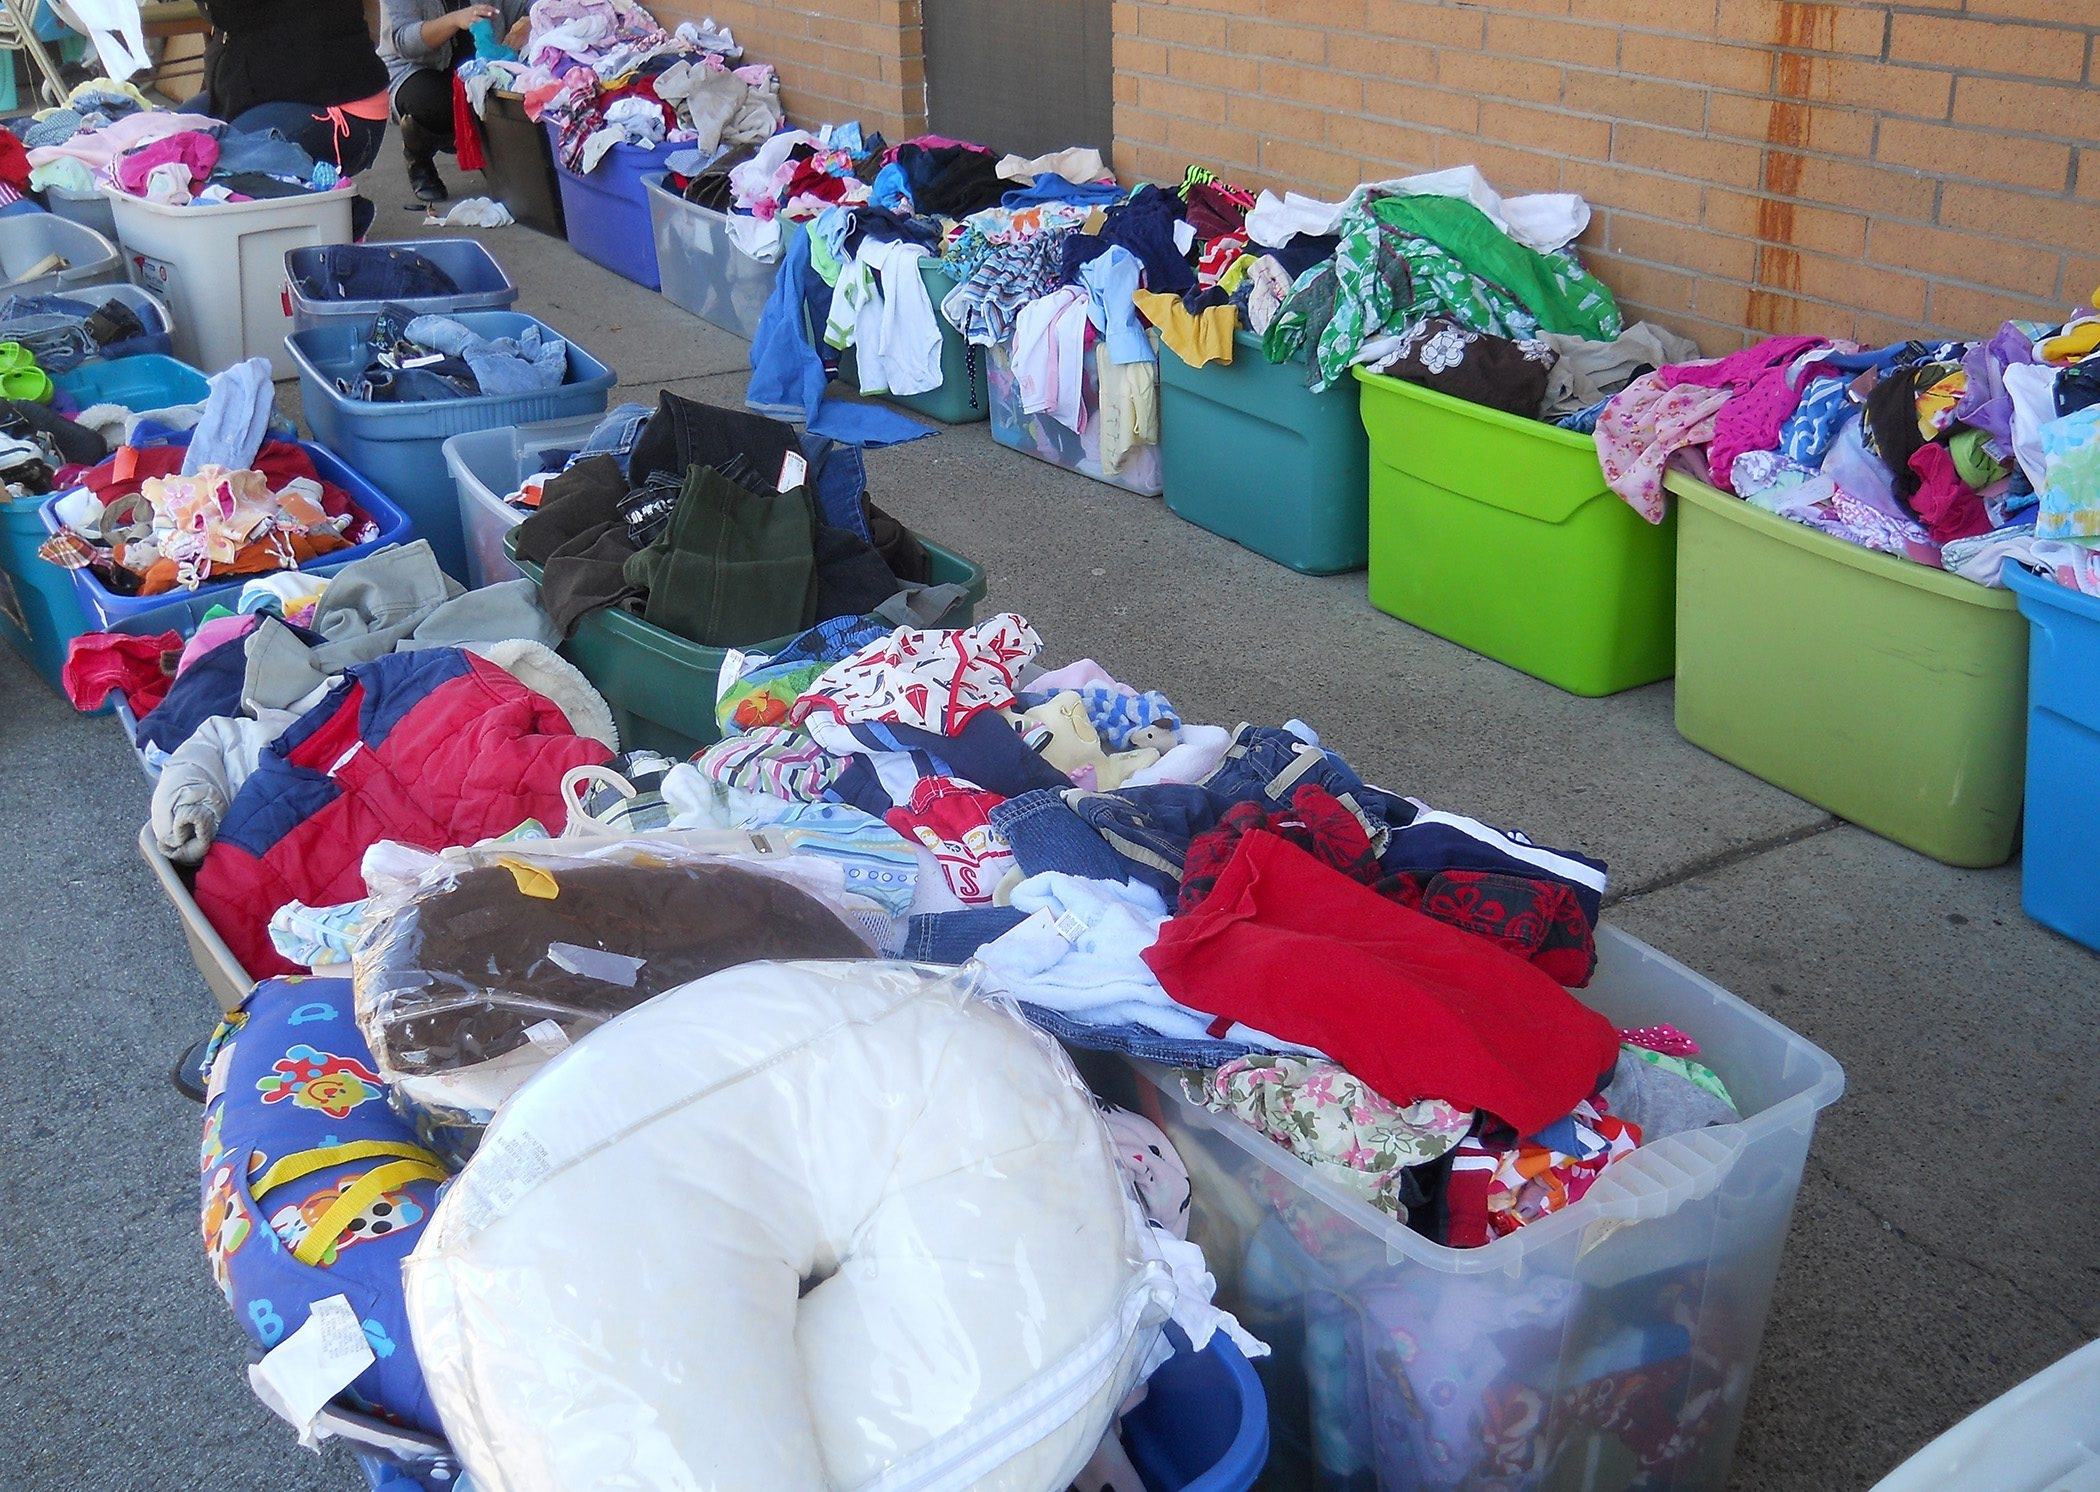 Boy Scout Troop 824 helped sort through boxes of children's clothing at Lollipop Loft to donate to Community Missions.